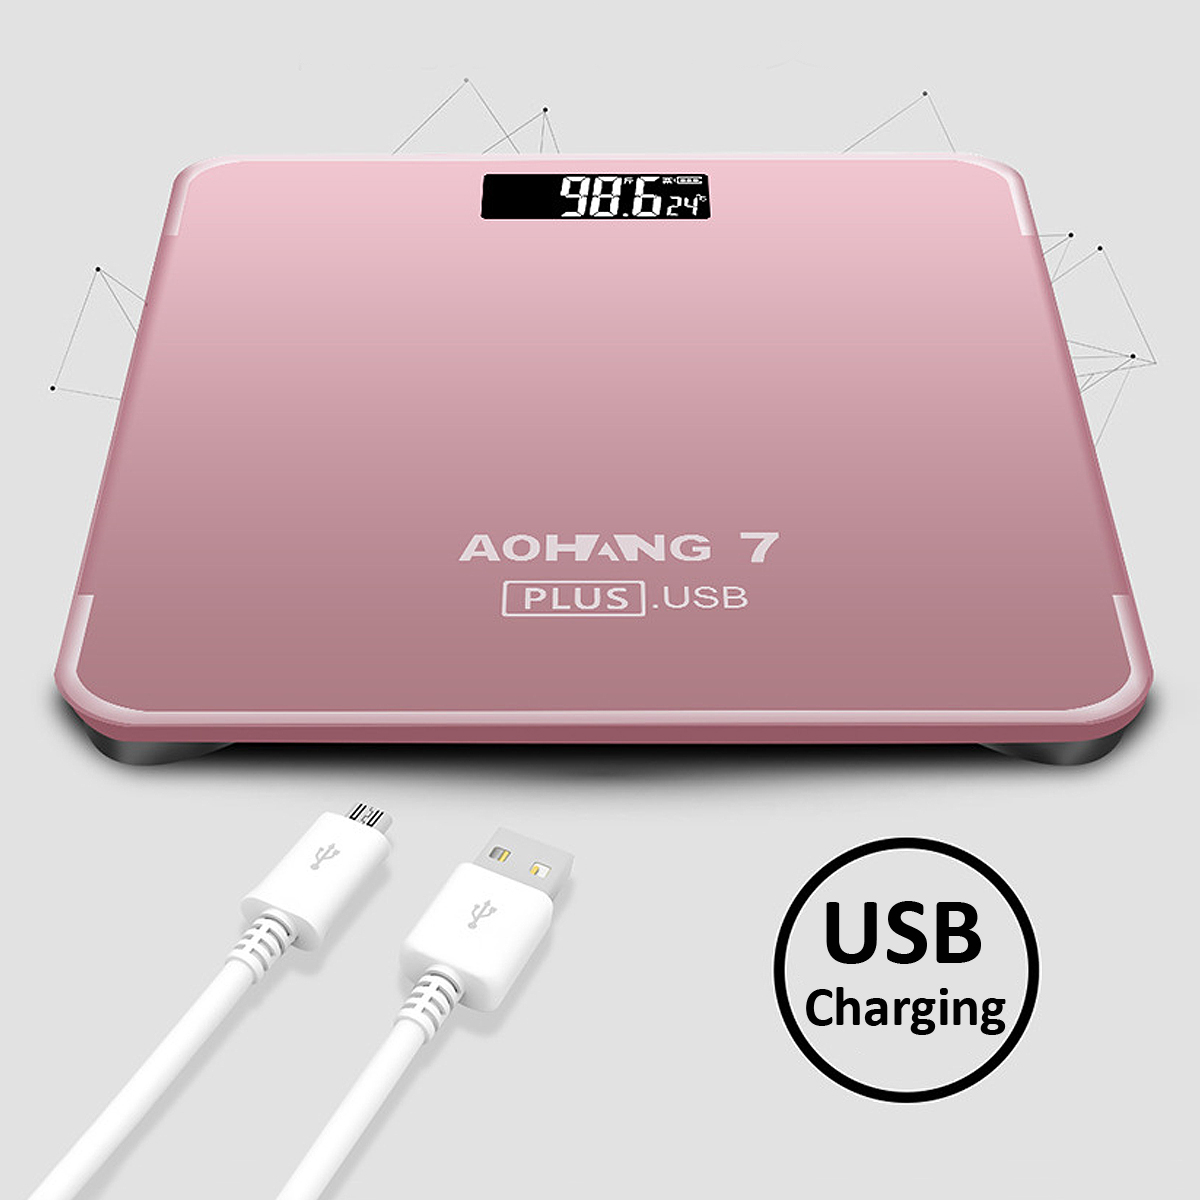 AOHANG 7 Plus USB Version 180kg LCD Electronic Digital Tempered Glass Body Weight Scale